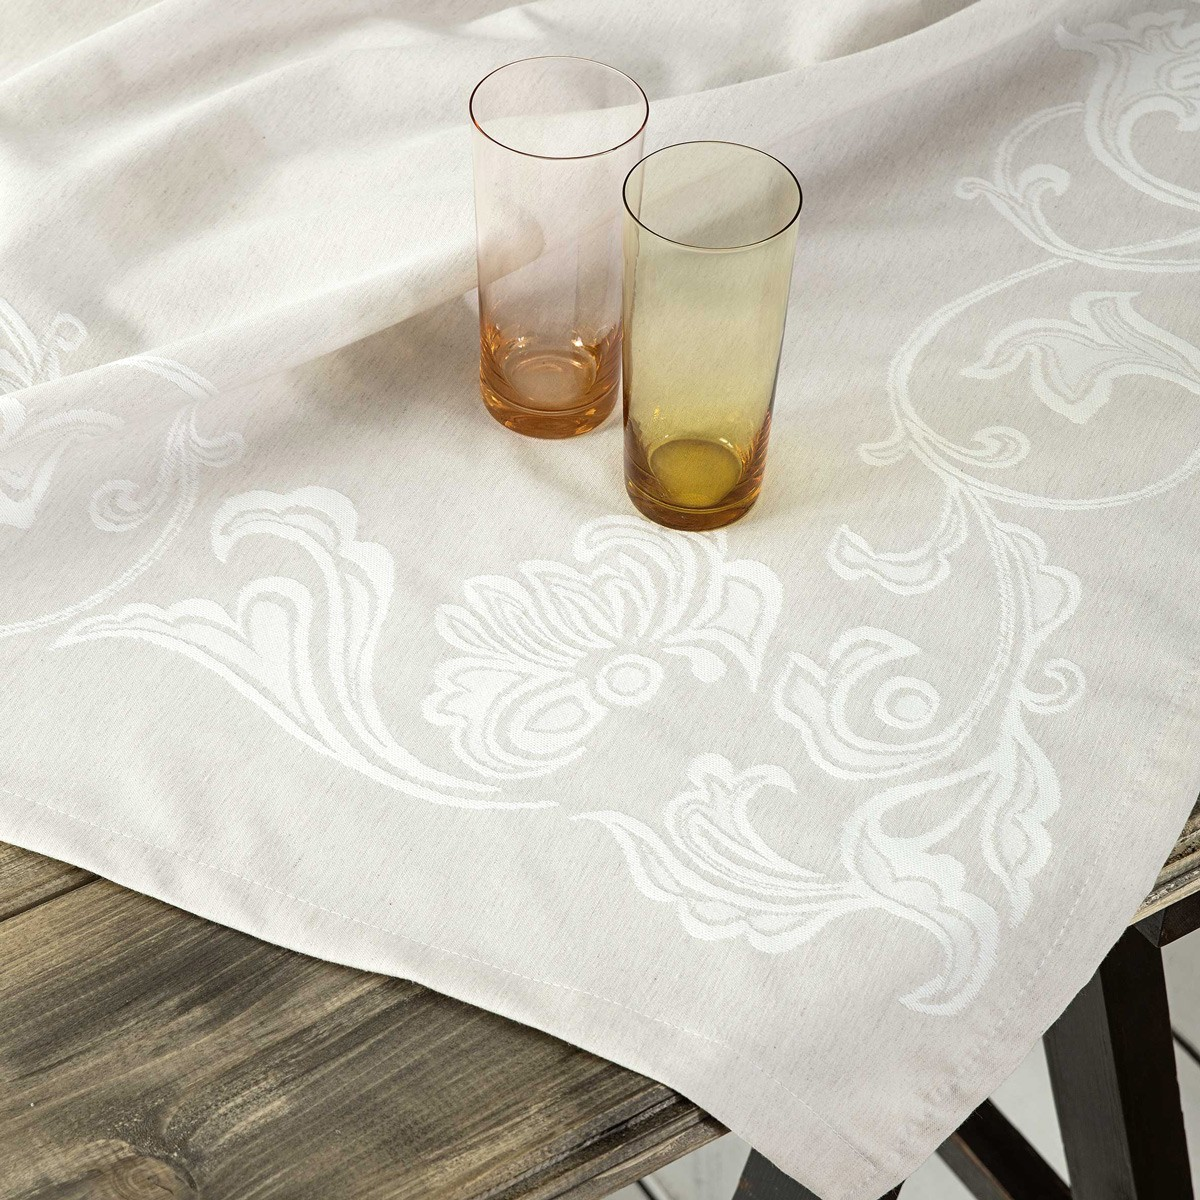 Τραπεζομάντηλο (165x265) Nima Table Linen Elodie Beige